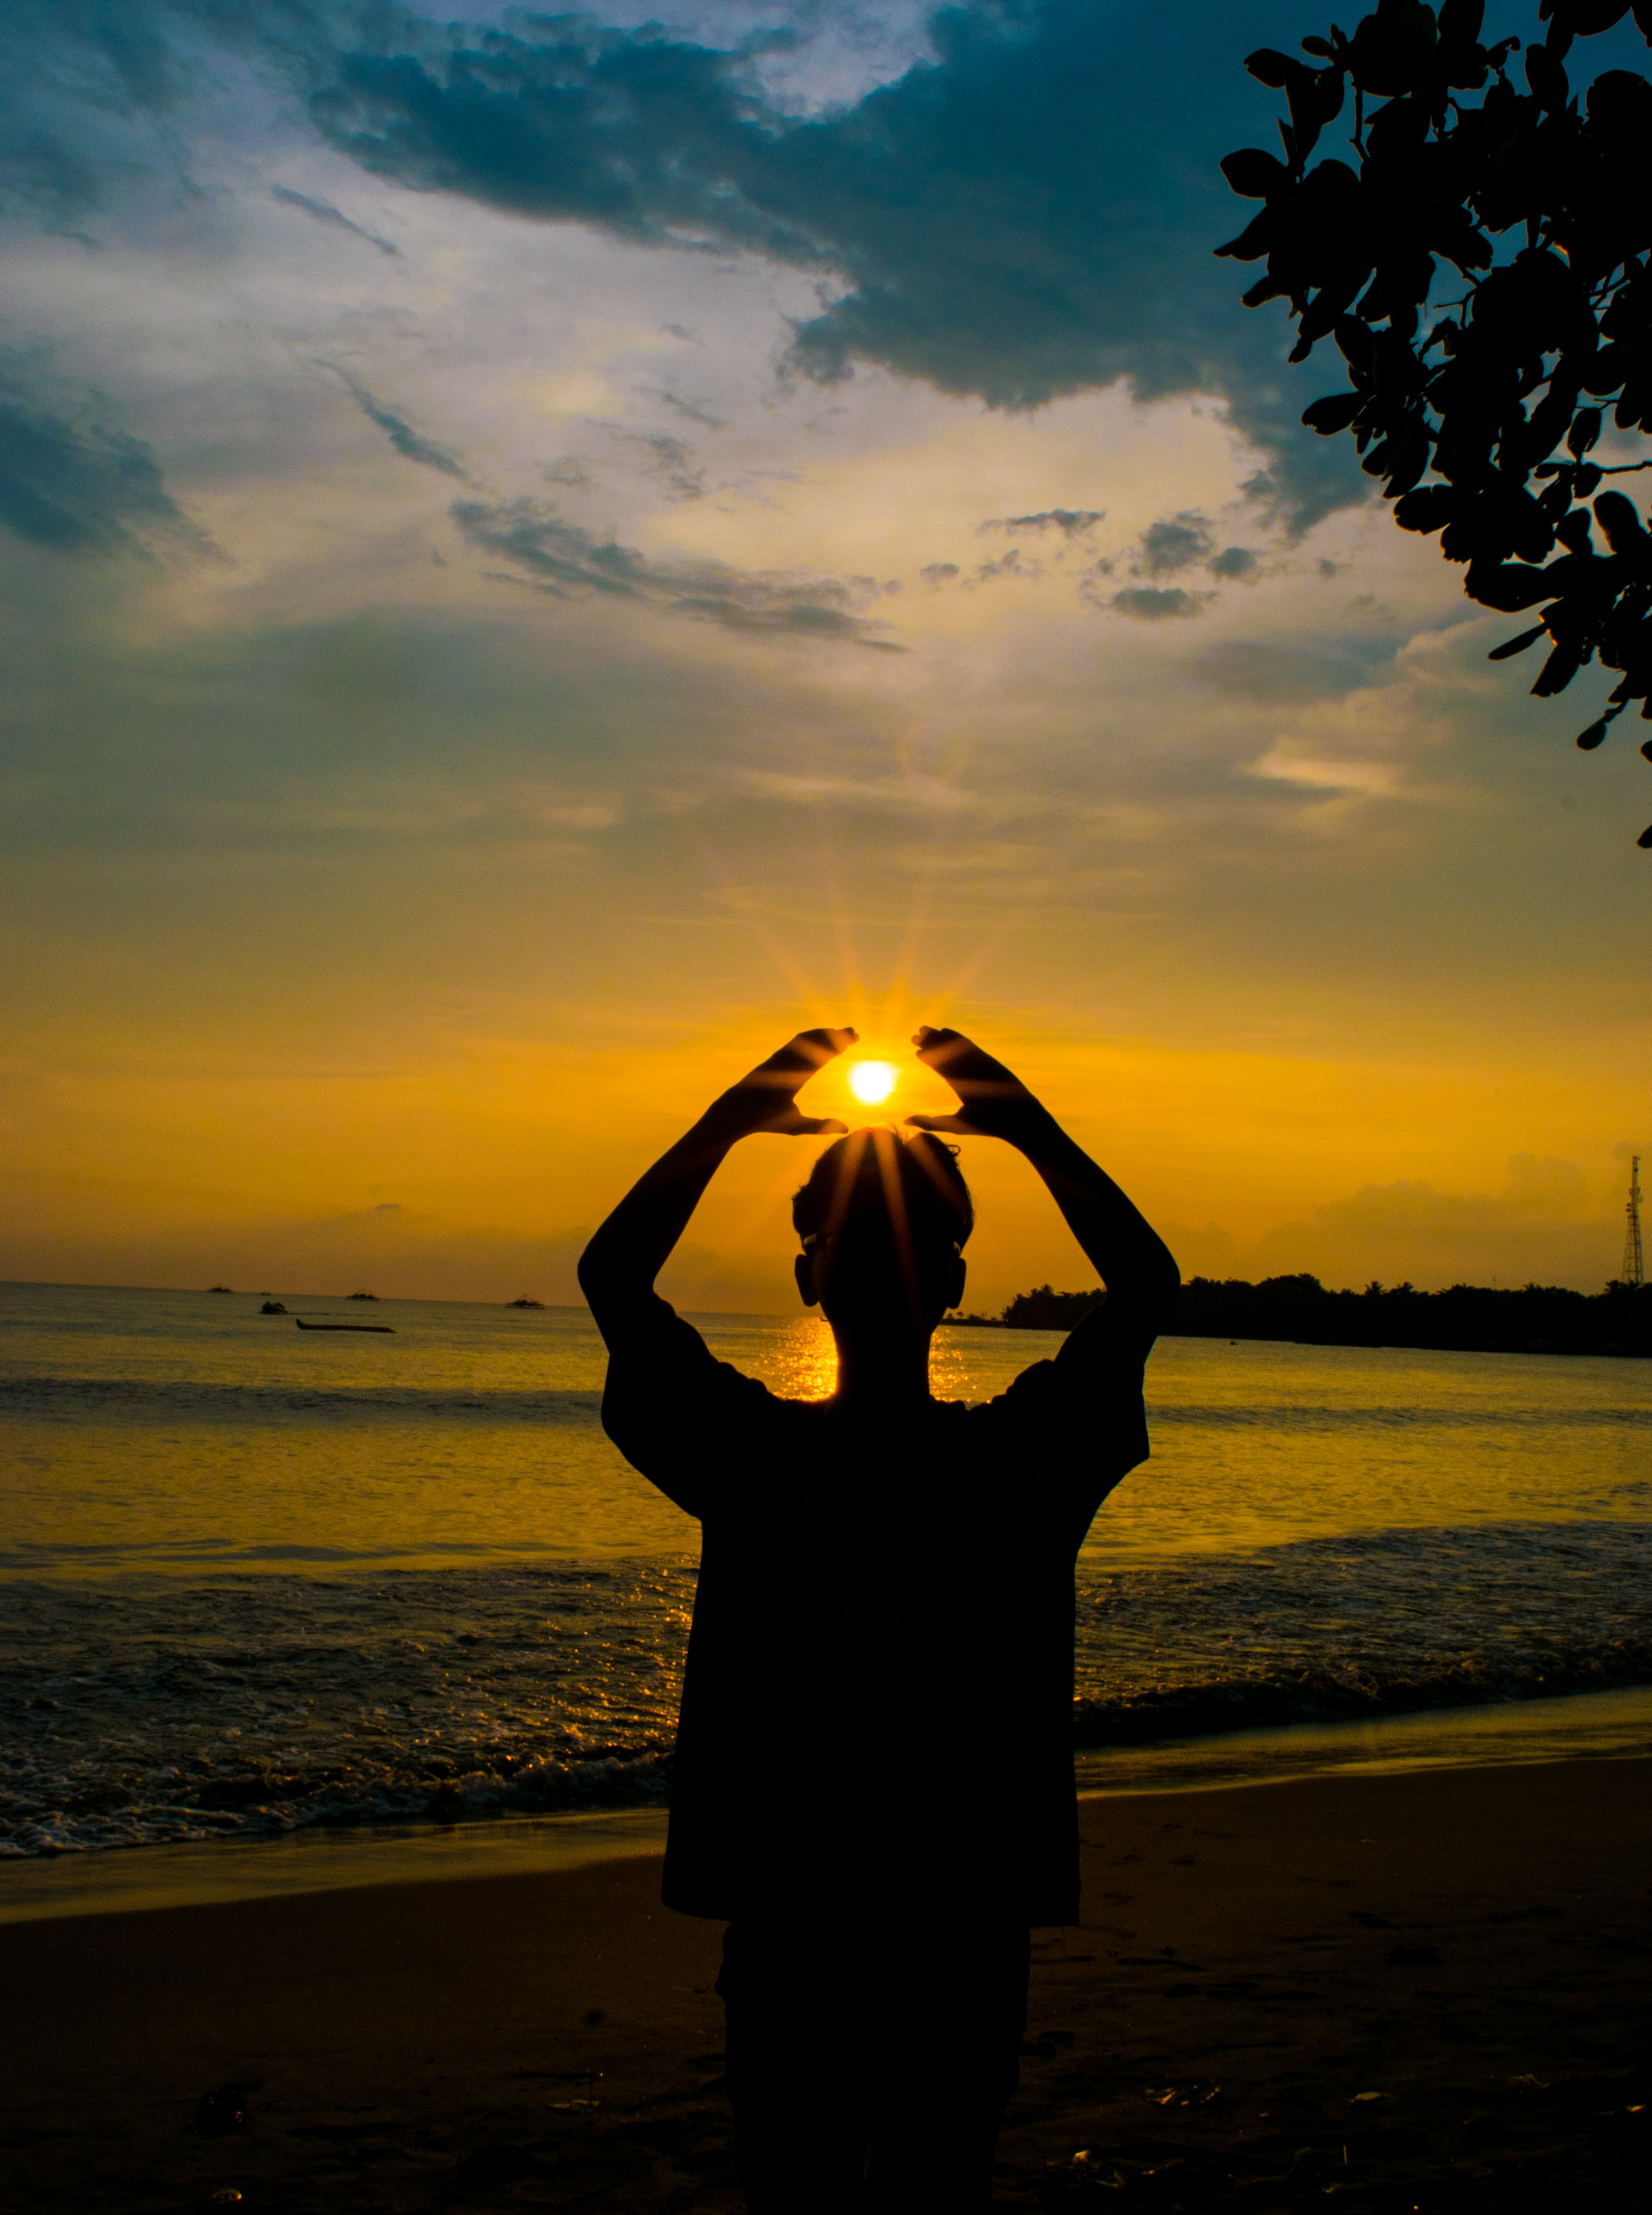 Silhouette Photo of Person Raising Hands